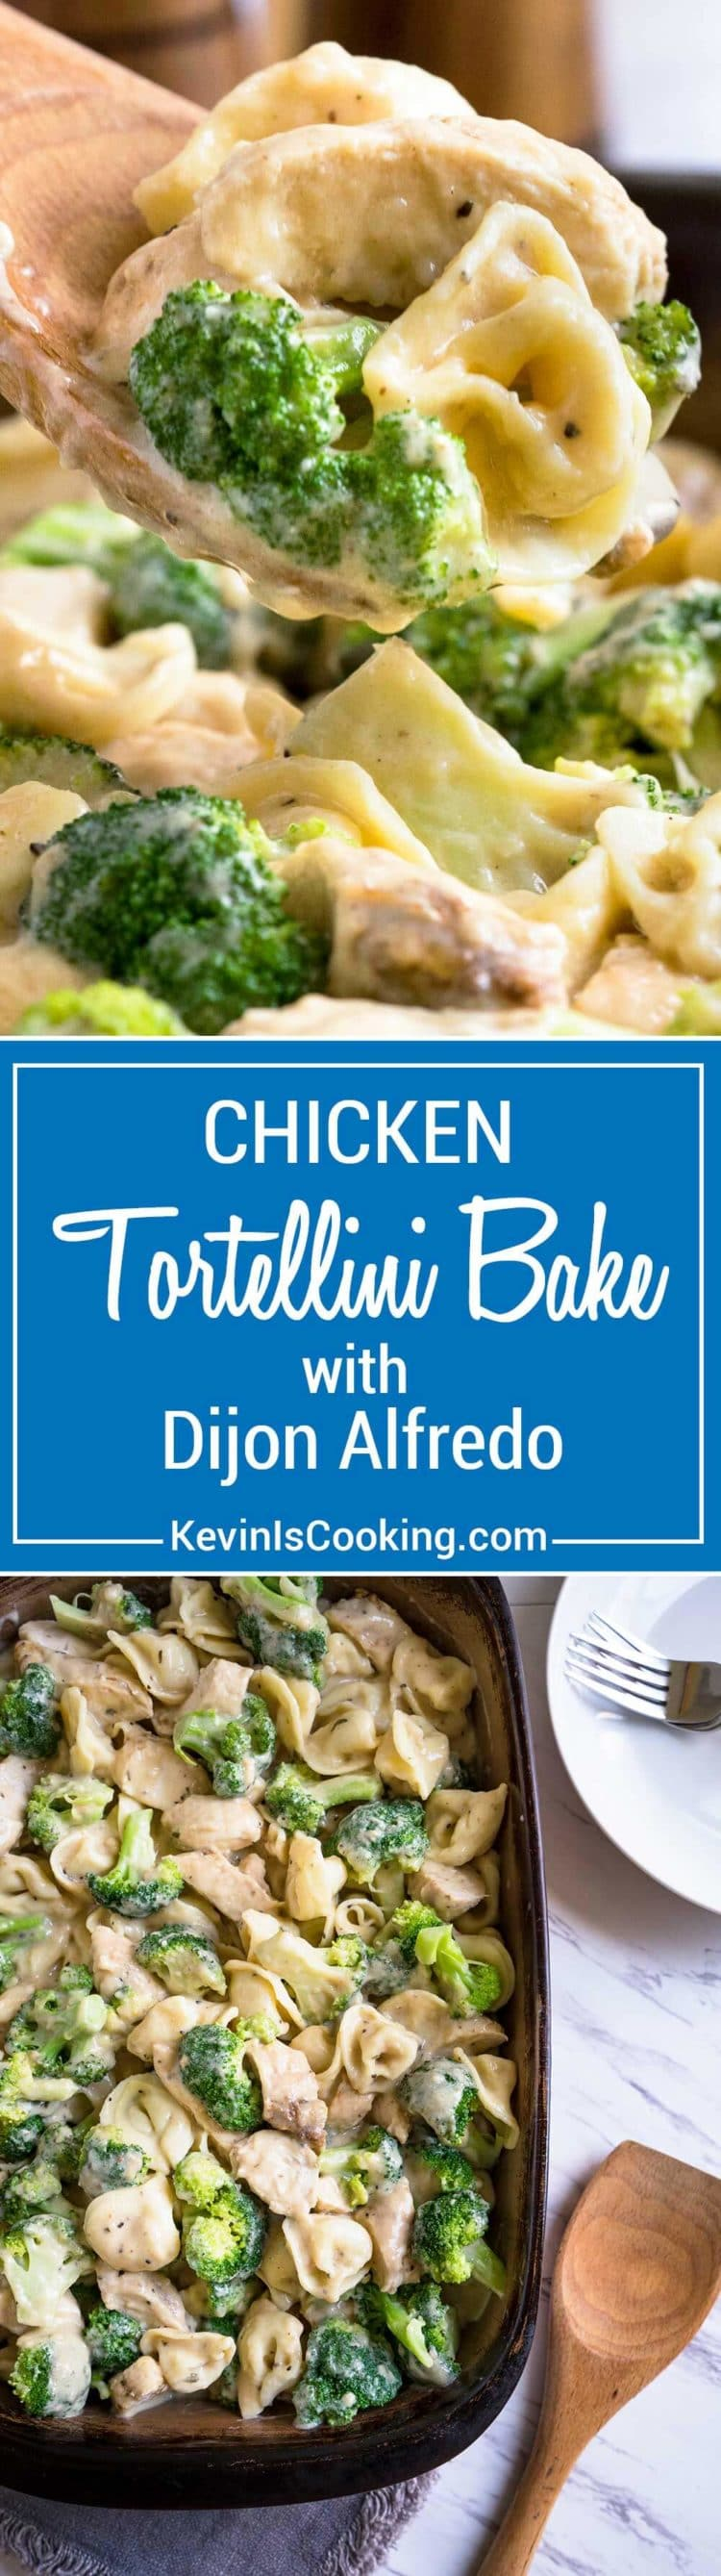 This Chicken Tortellini Dijon Alfredo gets lightened up a bit and some added flavor weapons like Dijon mustard and tarragon make this sauce sing. Fresh, crunchy broccoli and a cheese tortellini are tossed with pan seared chicken strips for a quick and delicious dinner. The whole family loves it!